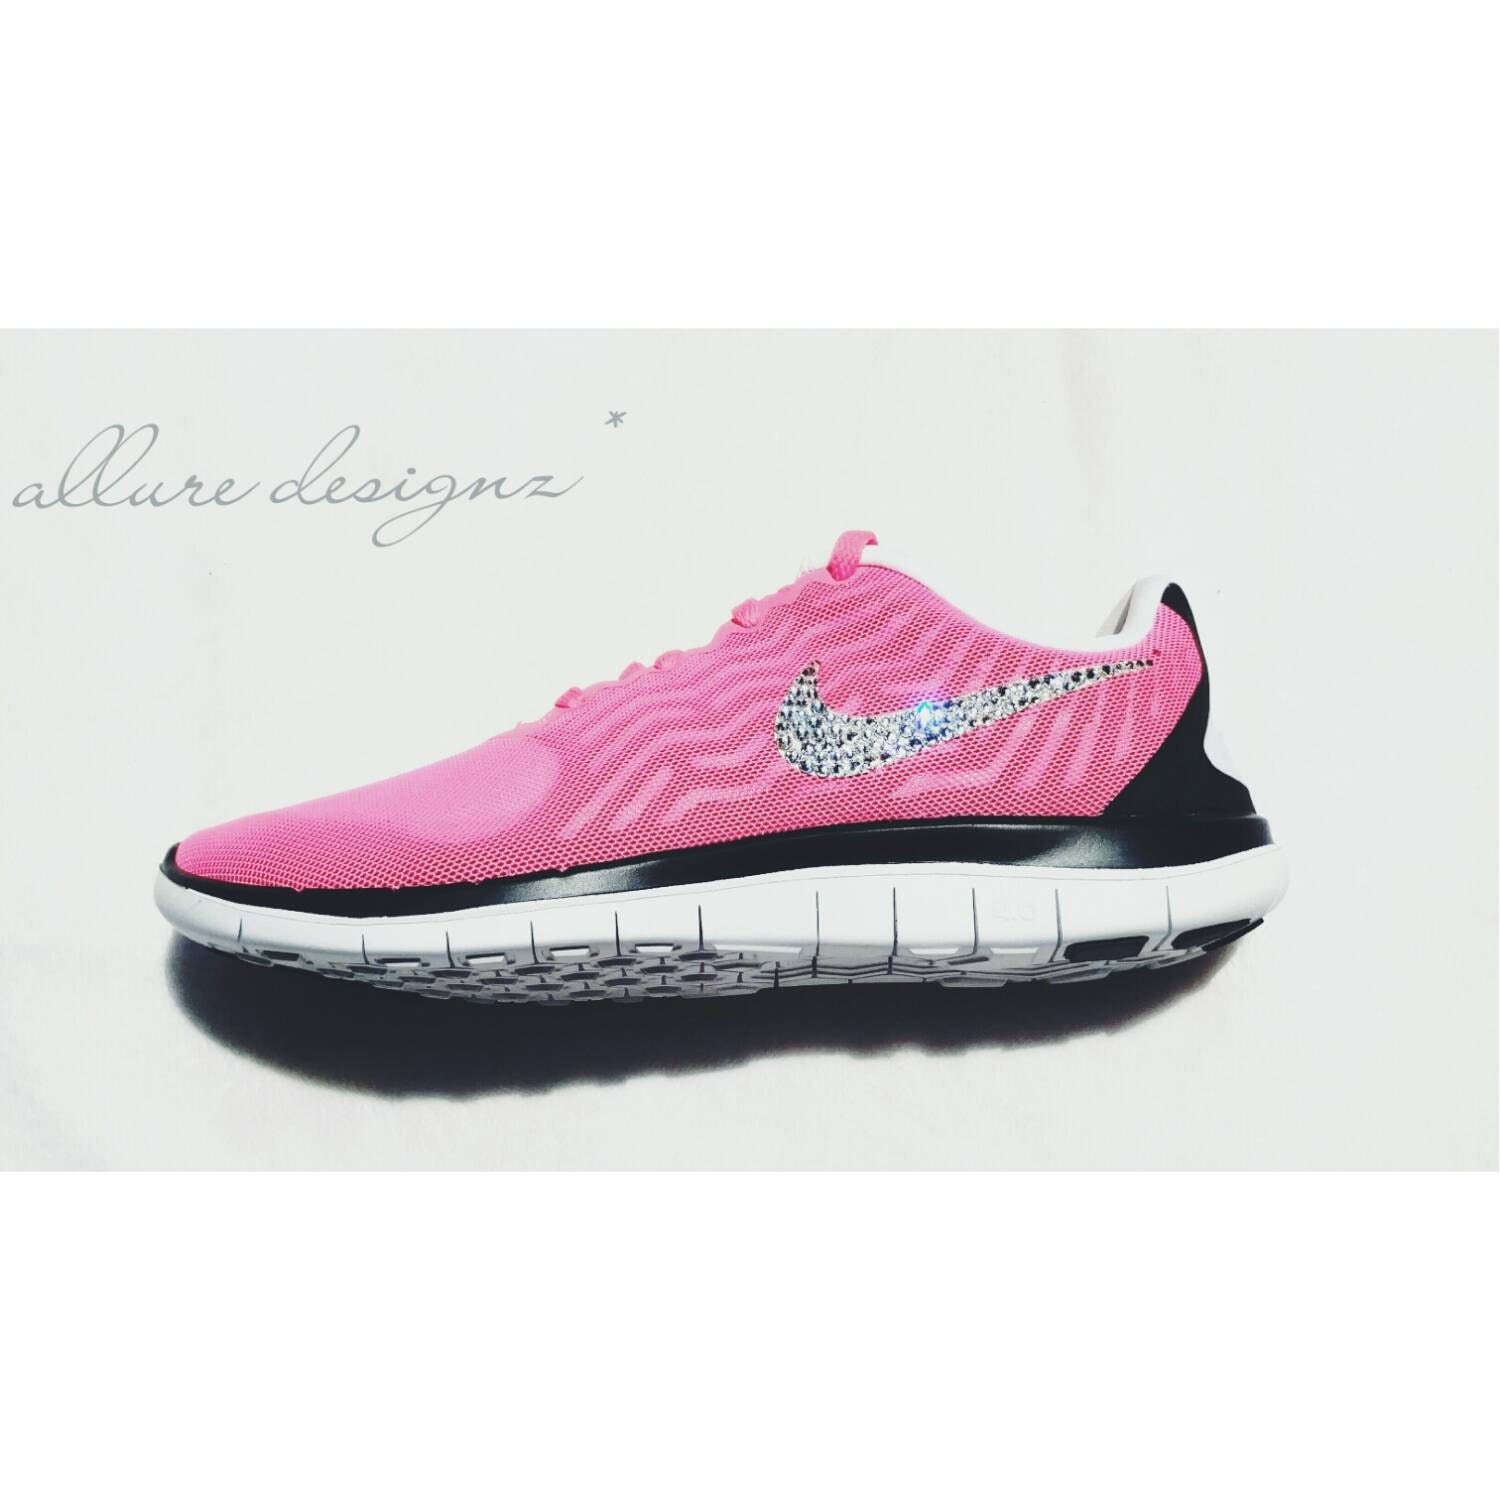 Nike Free Run 50 v2 Couple Models Shoes Black and silver